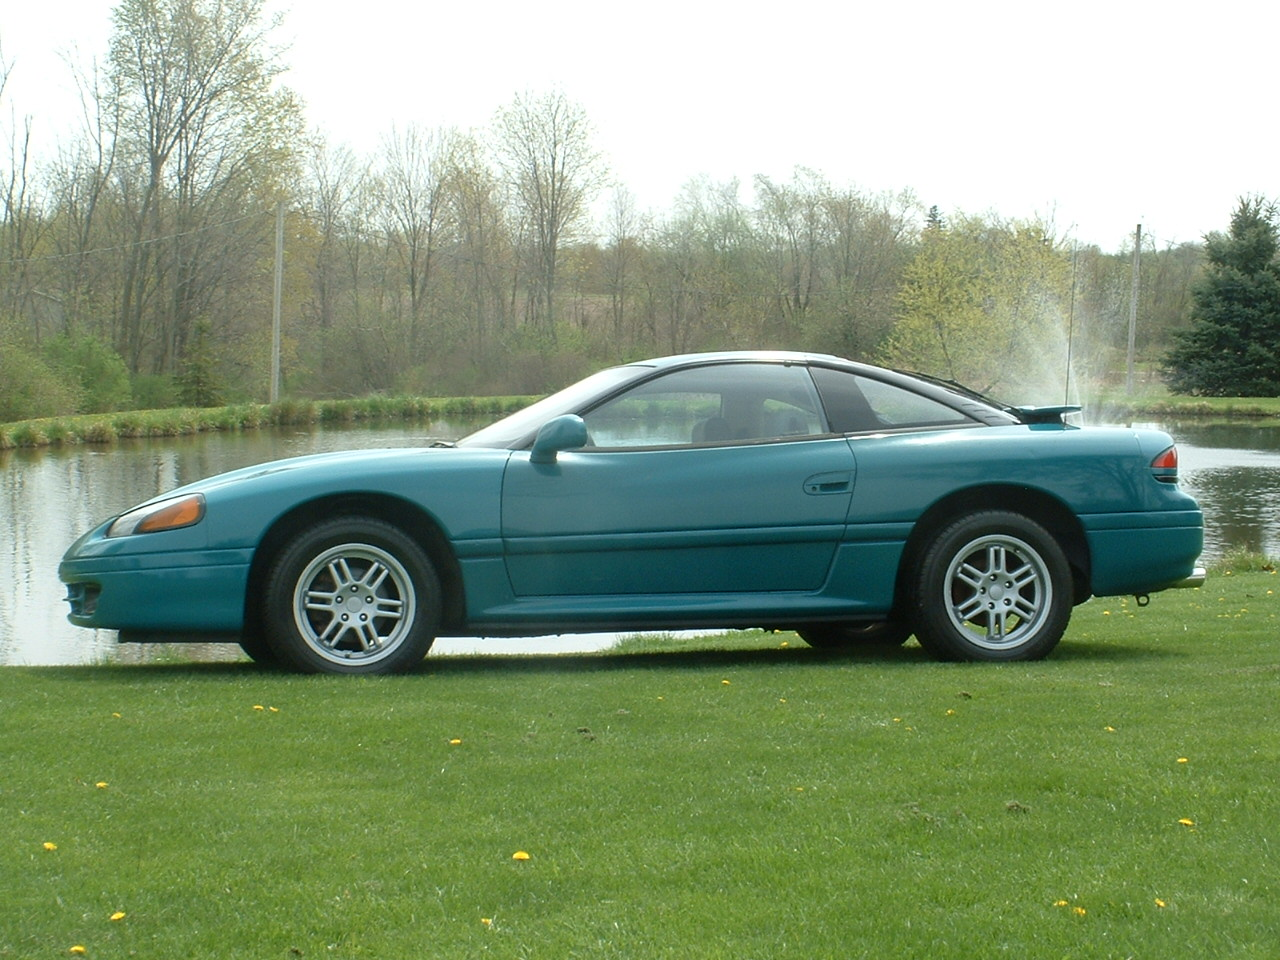 1995 Dodge Stealth Information And Photos Zombiedrive